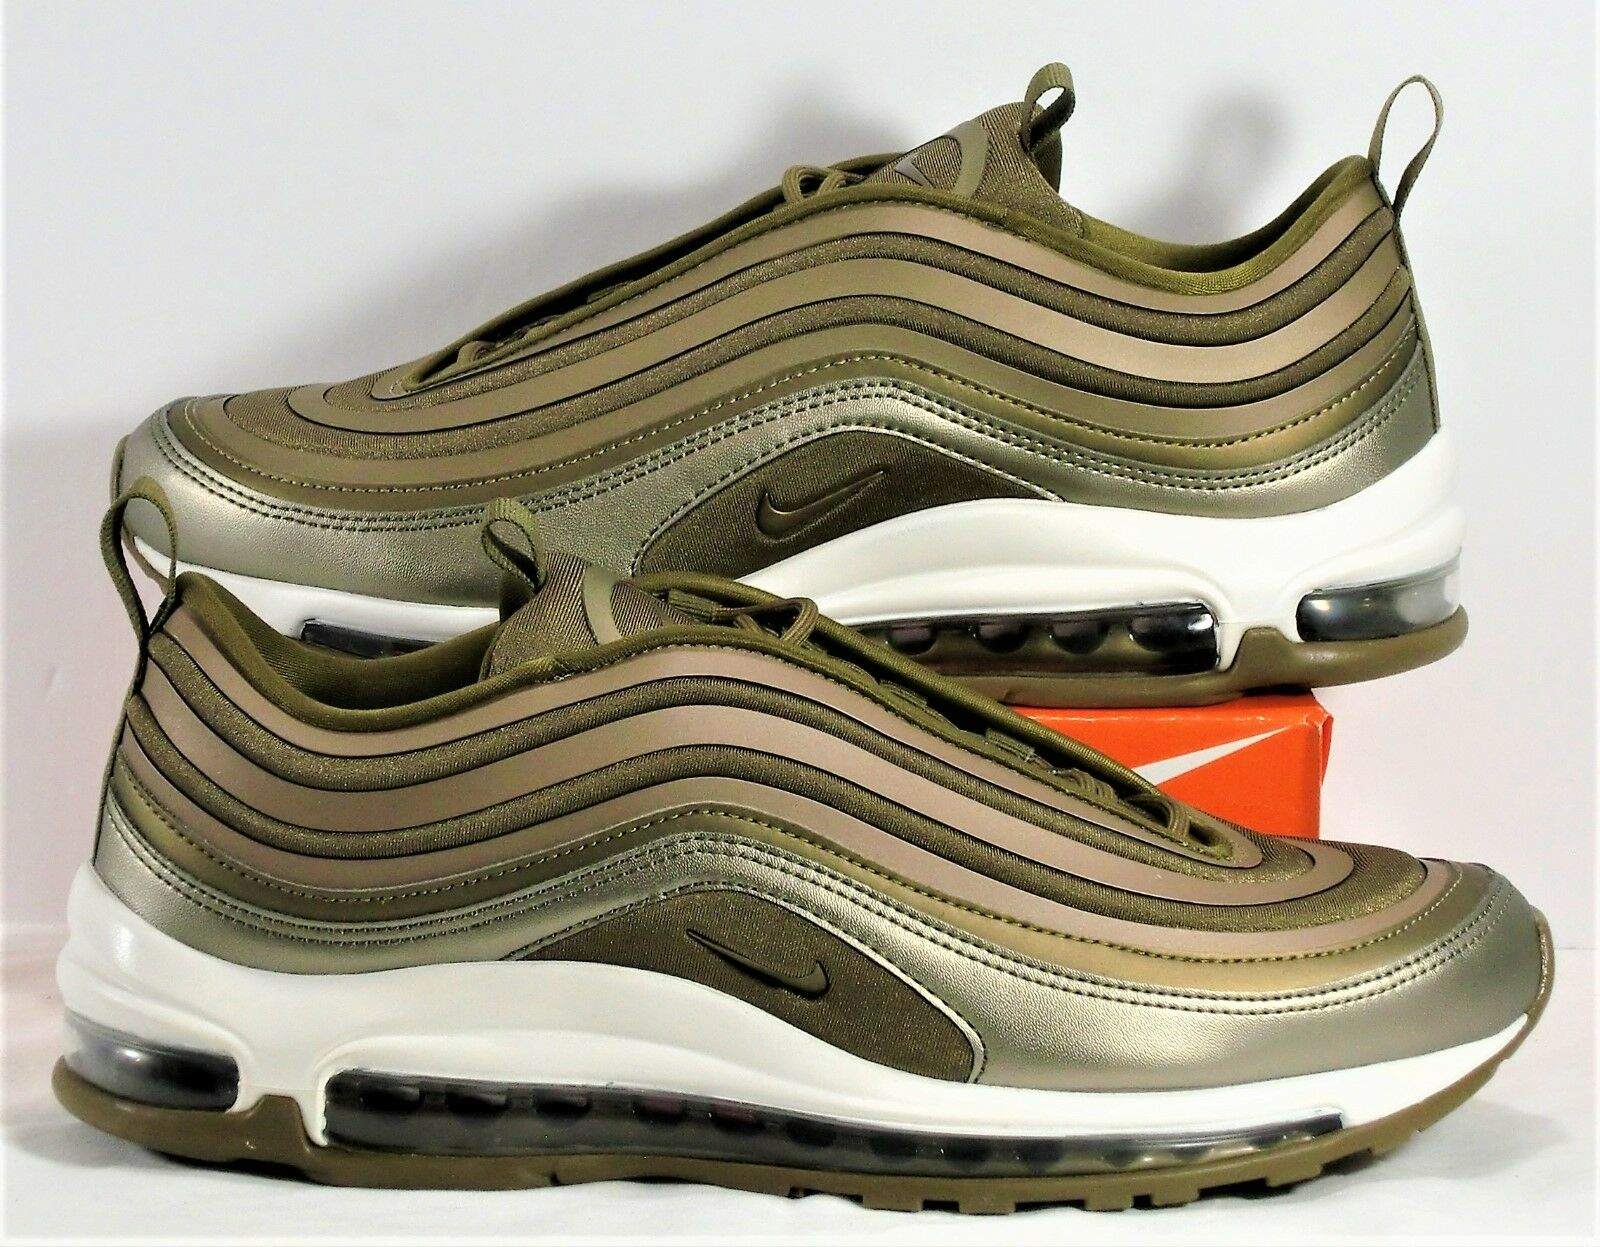 Nike Air Max 97 UL 17 Metallic Gold Womens Running Shoes Sz 9 NEW 917704 901